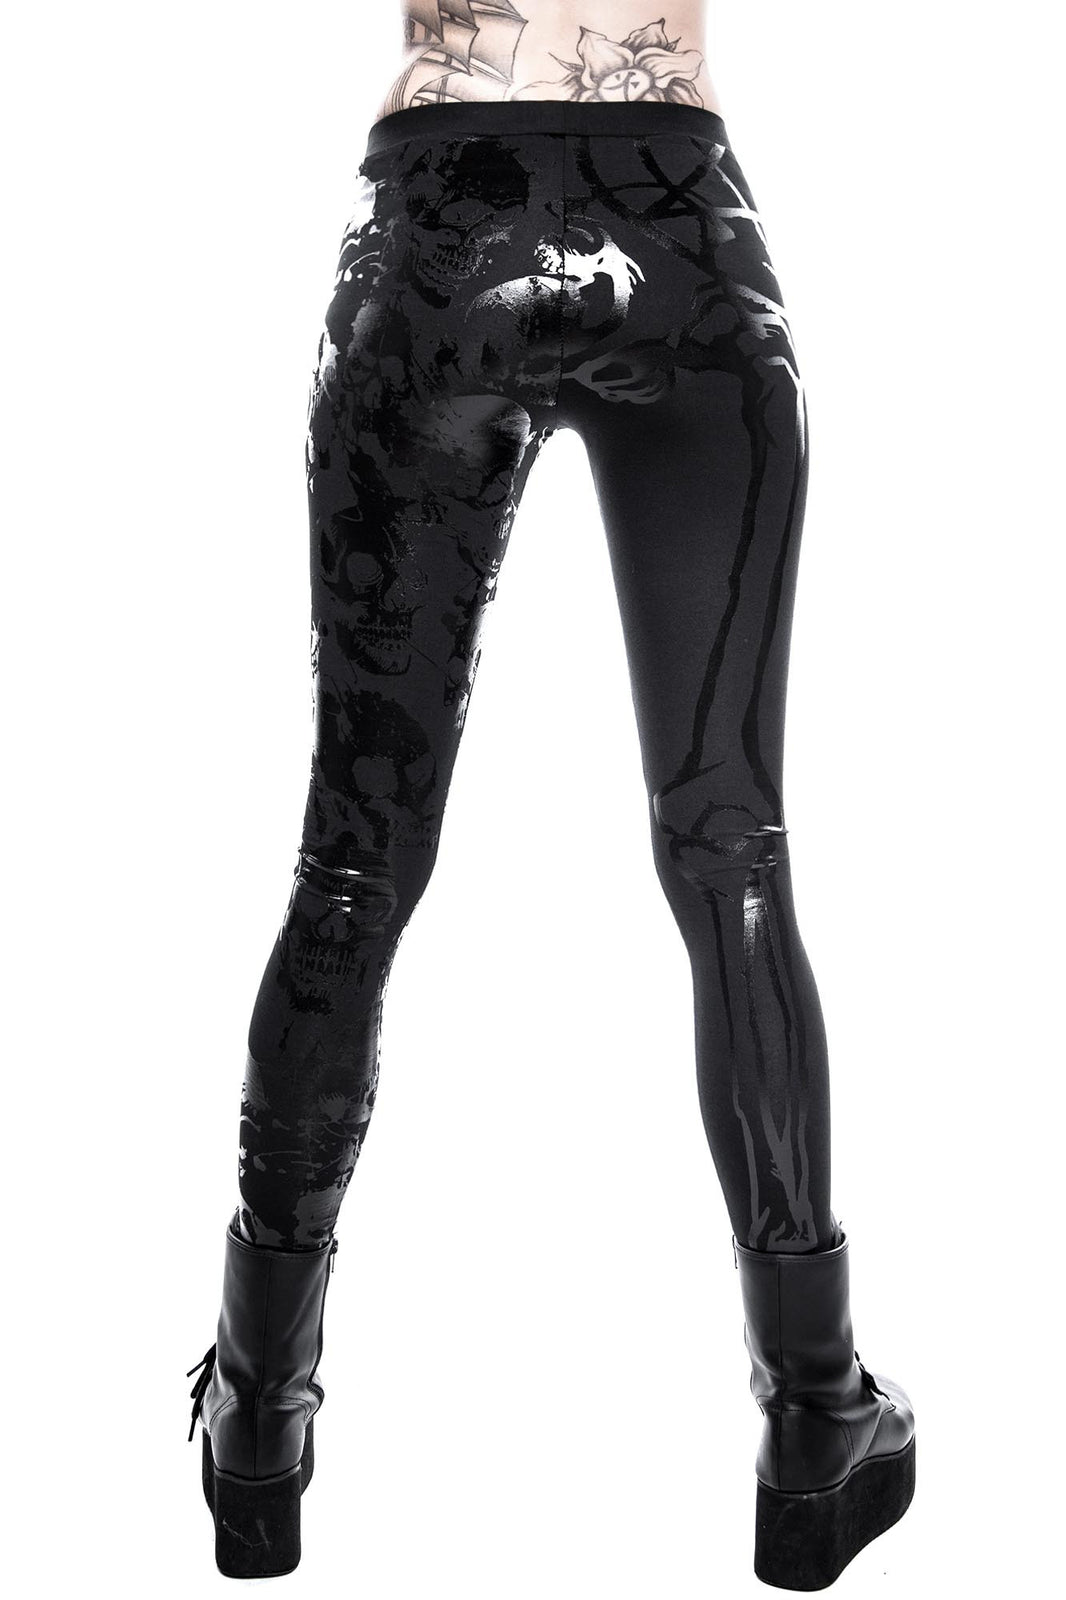 Chaos Matrix Leggings [B]